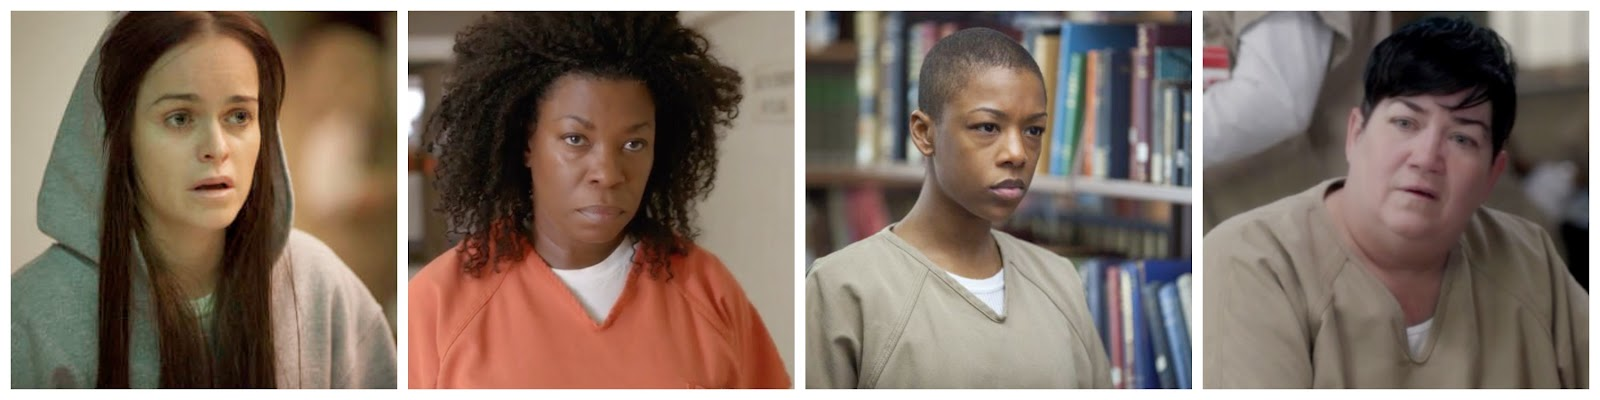 Best Quotes From Season 2 Of Orange Is The New Black